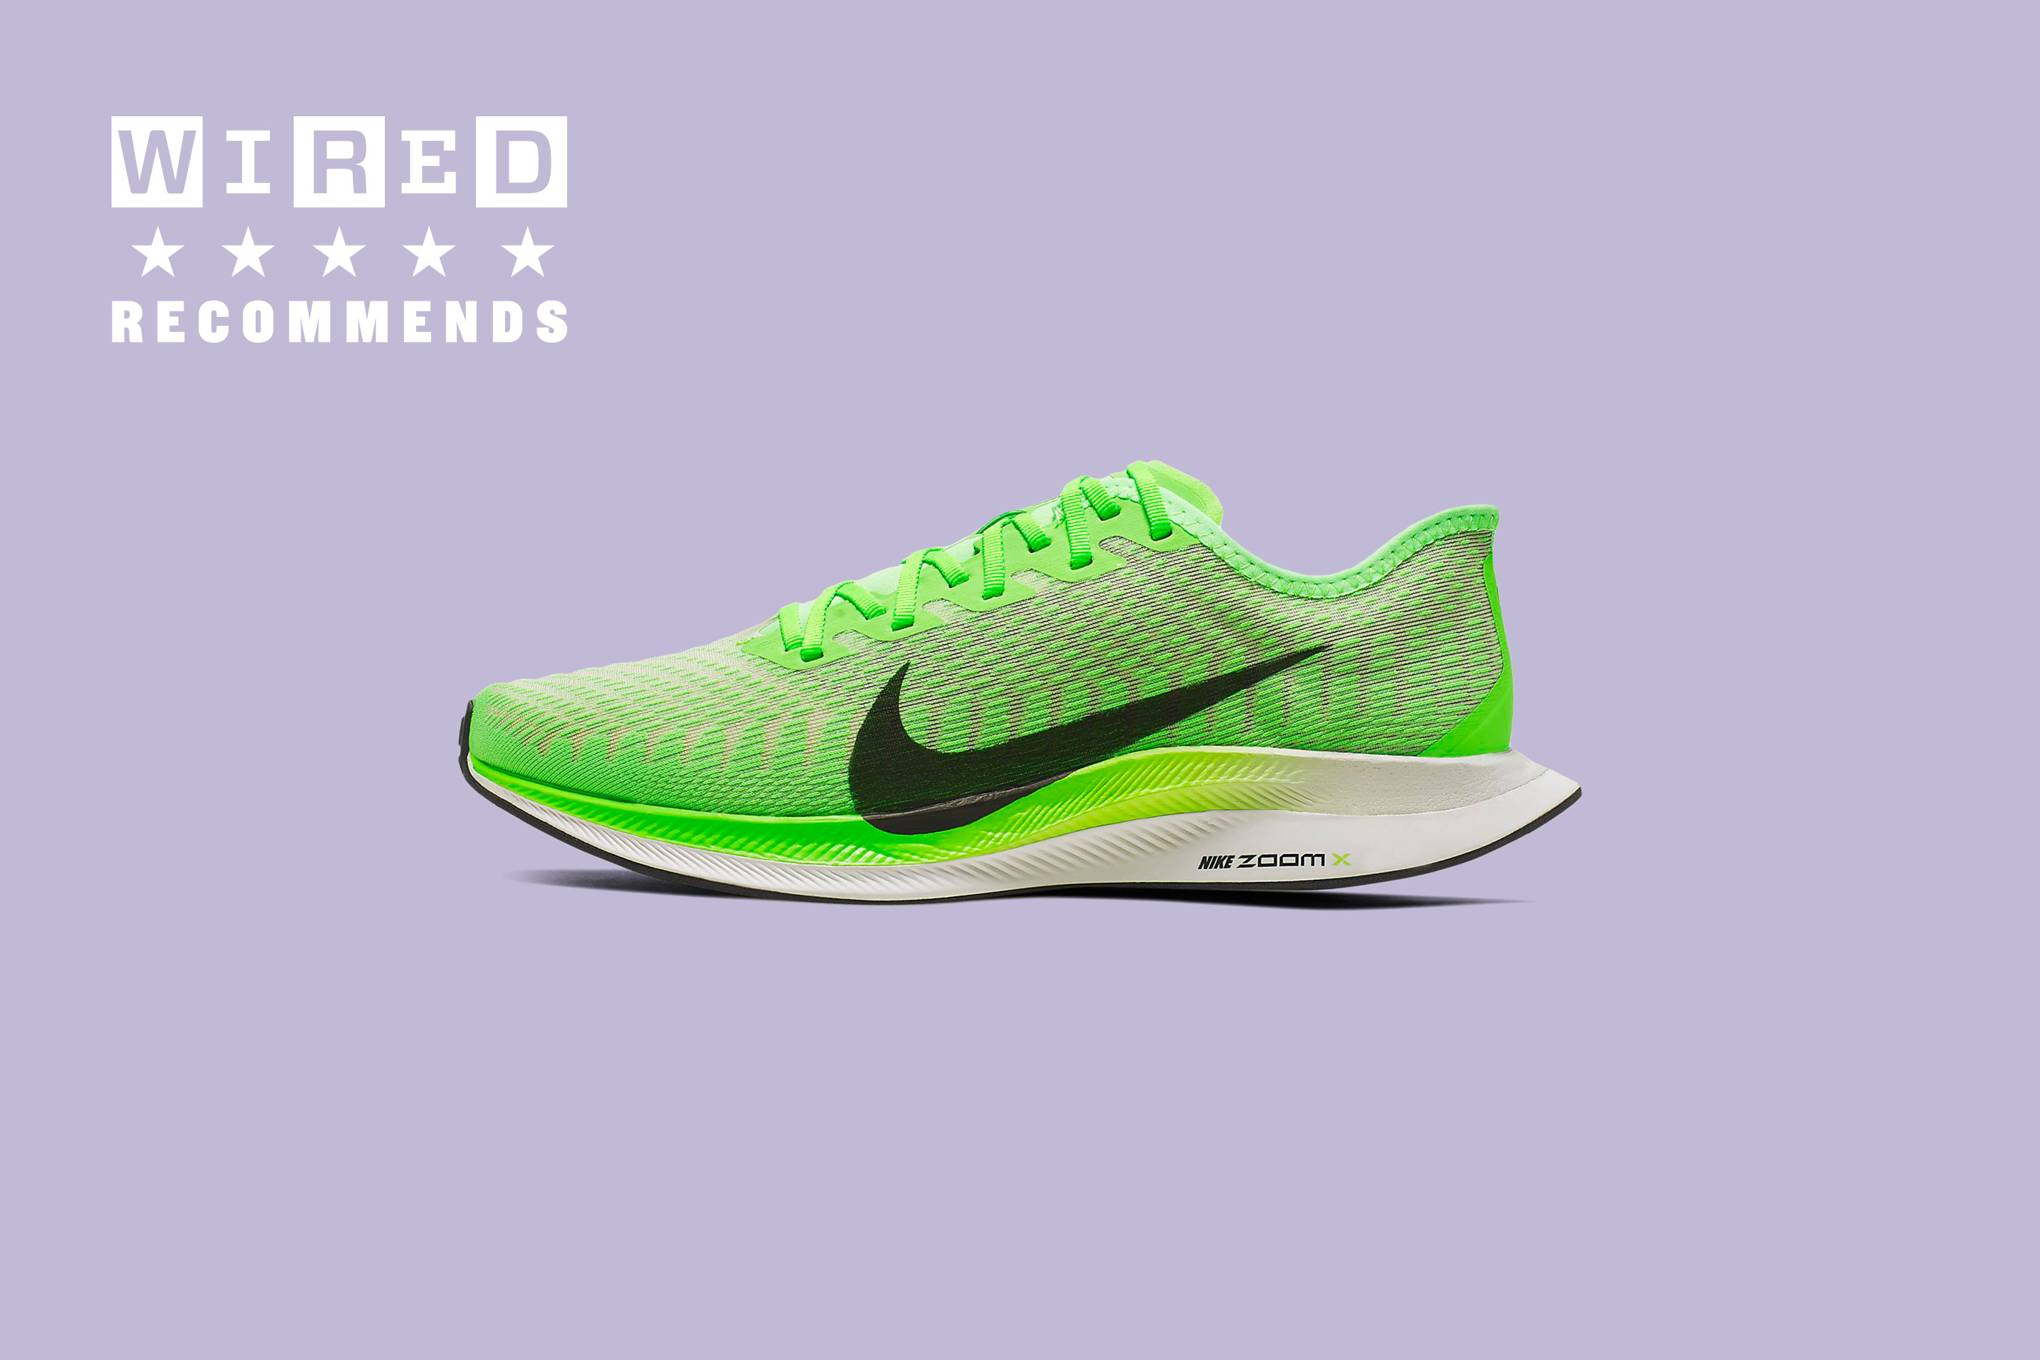 Best Nike running shoes 2020: Top picks